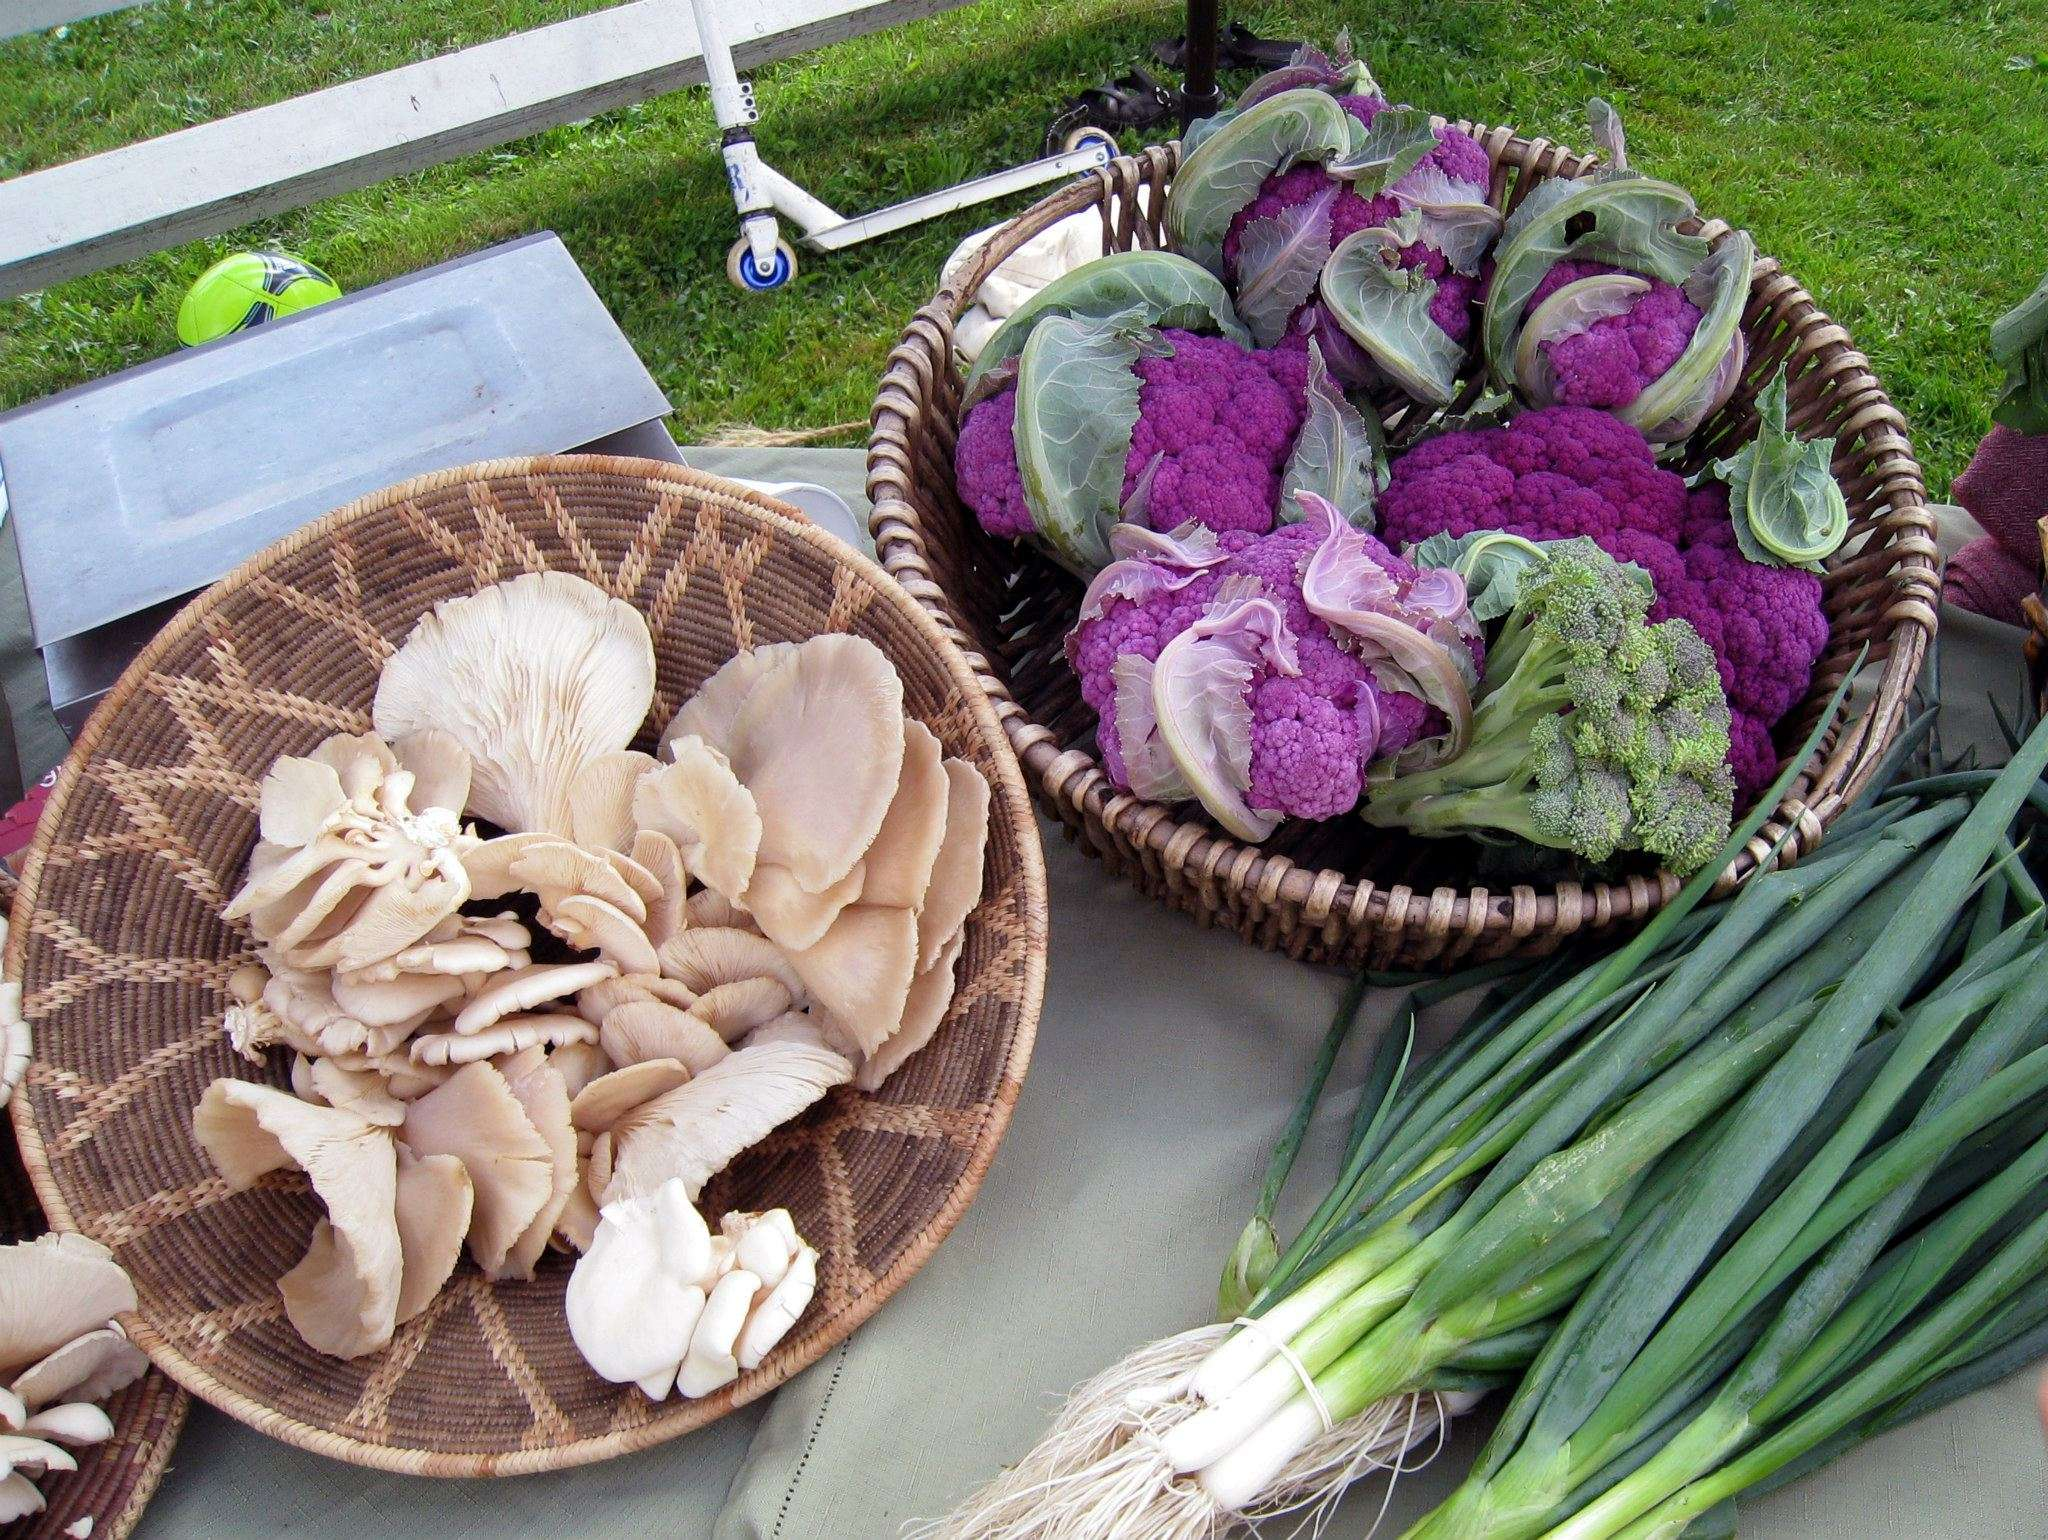 Craftsbury Farmers Market Vendor Products - fresh vegetables